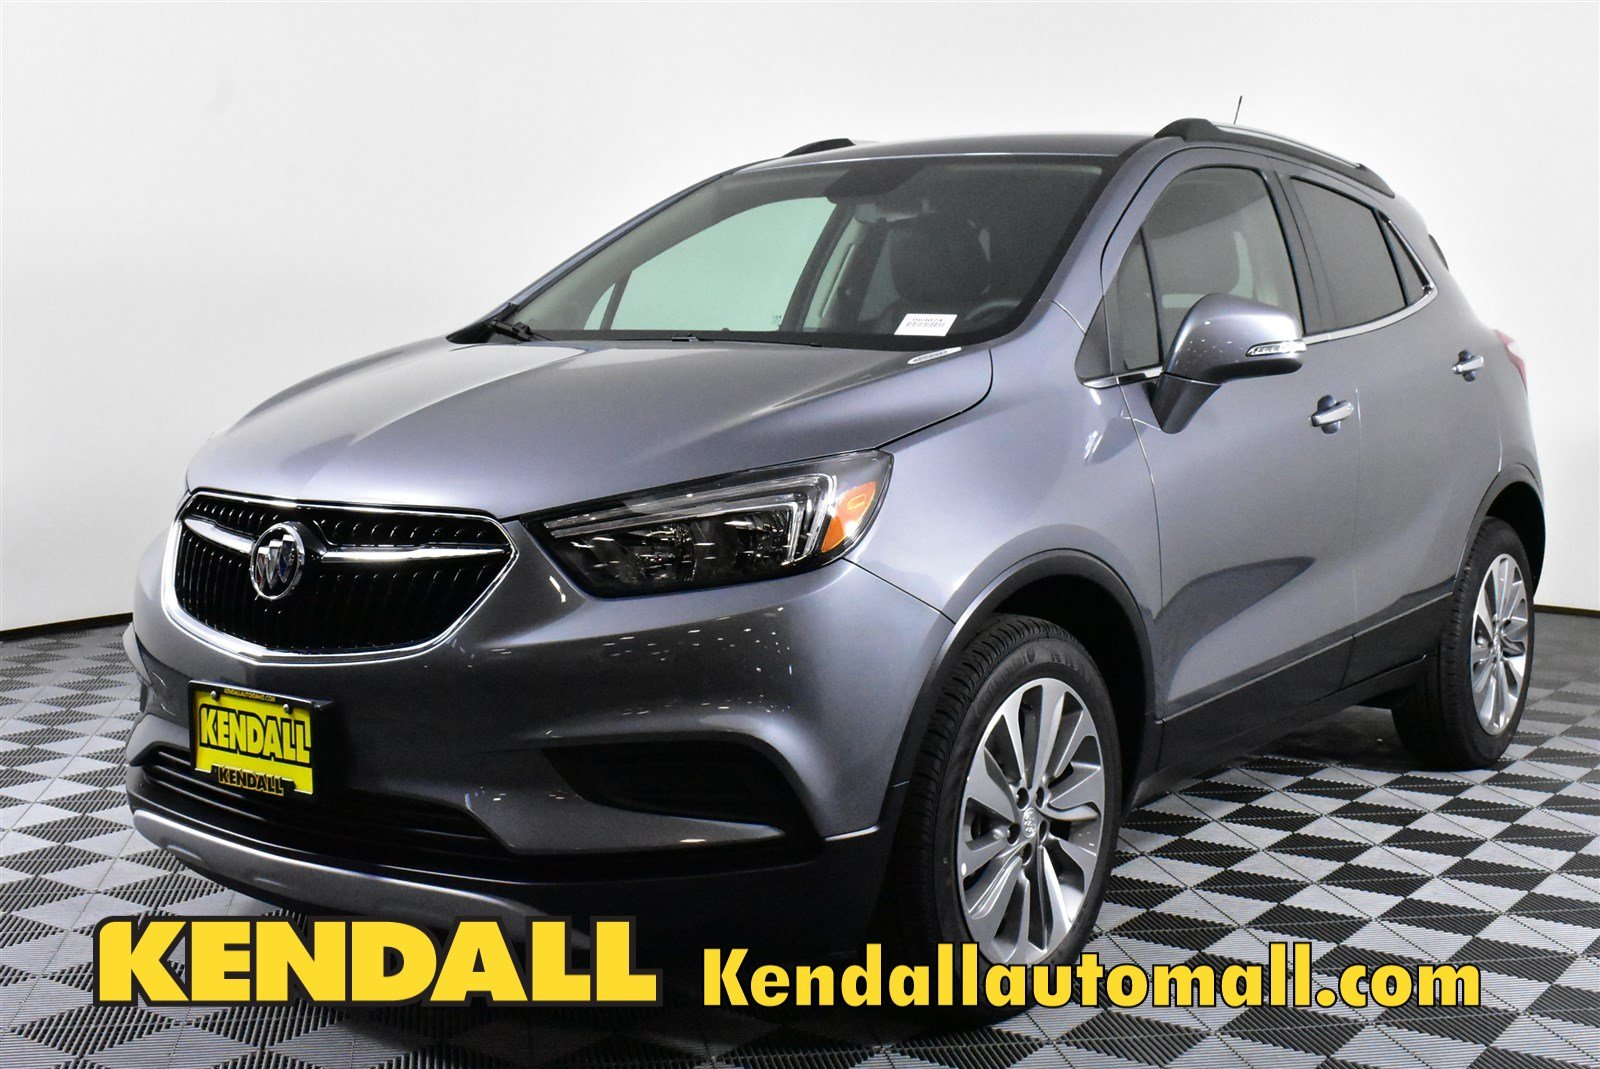 Lease Specials In Nampa Idaho Kendall At The Center Auto Mall 2002 Dodge Durango Fuel Filter A New 2019 Buick Encore Preferred Fwd